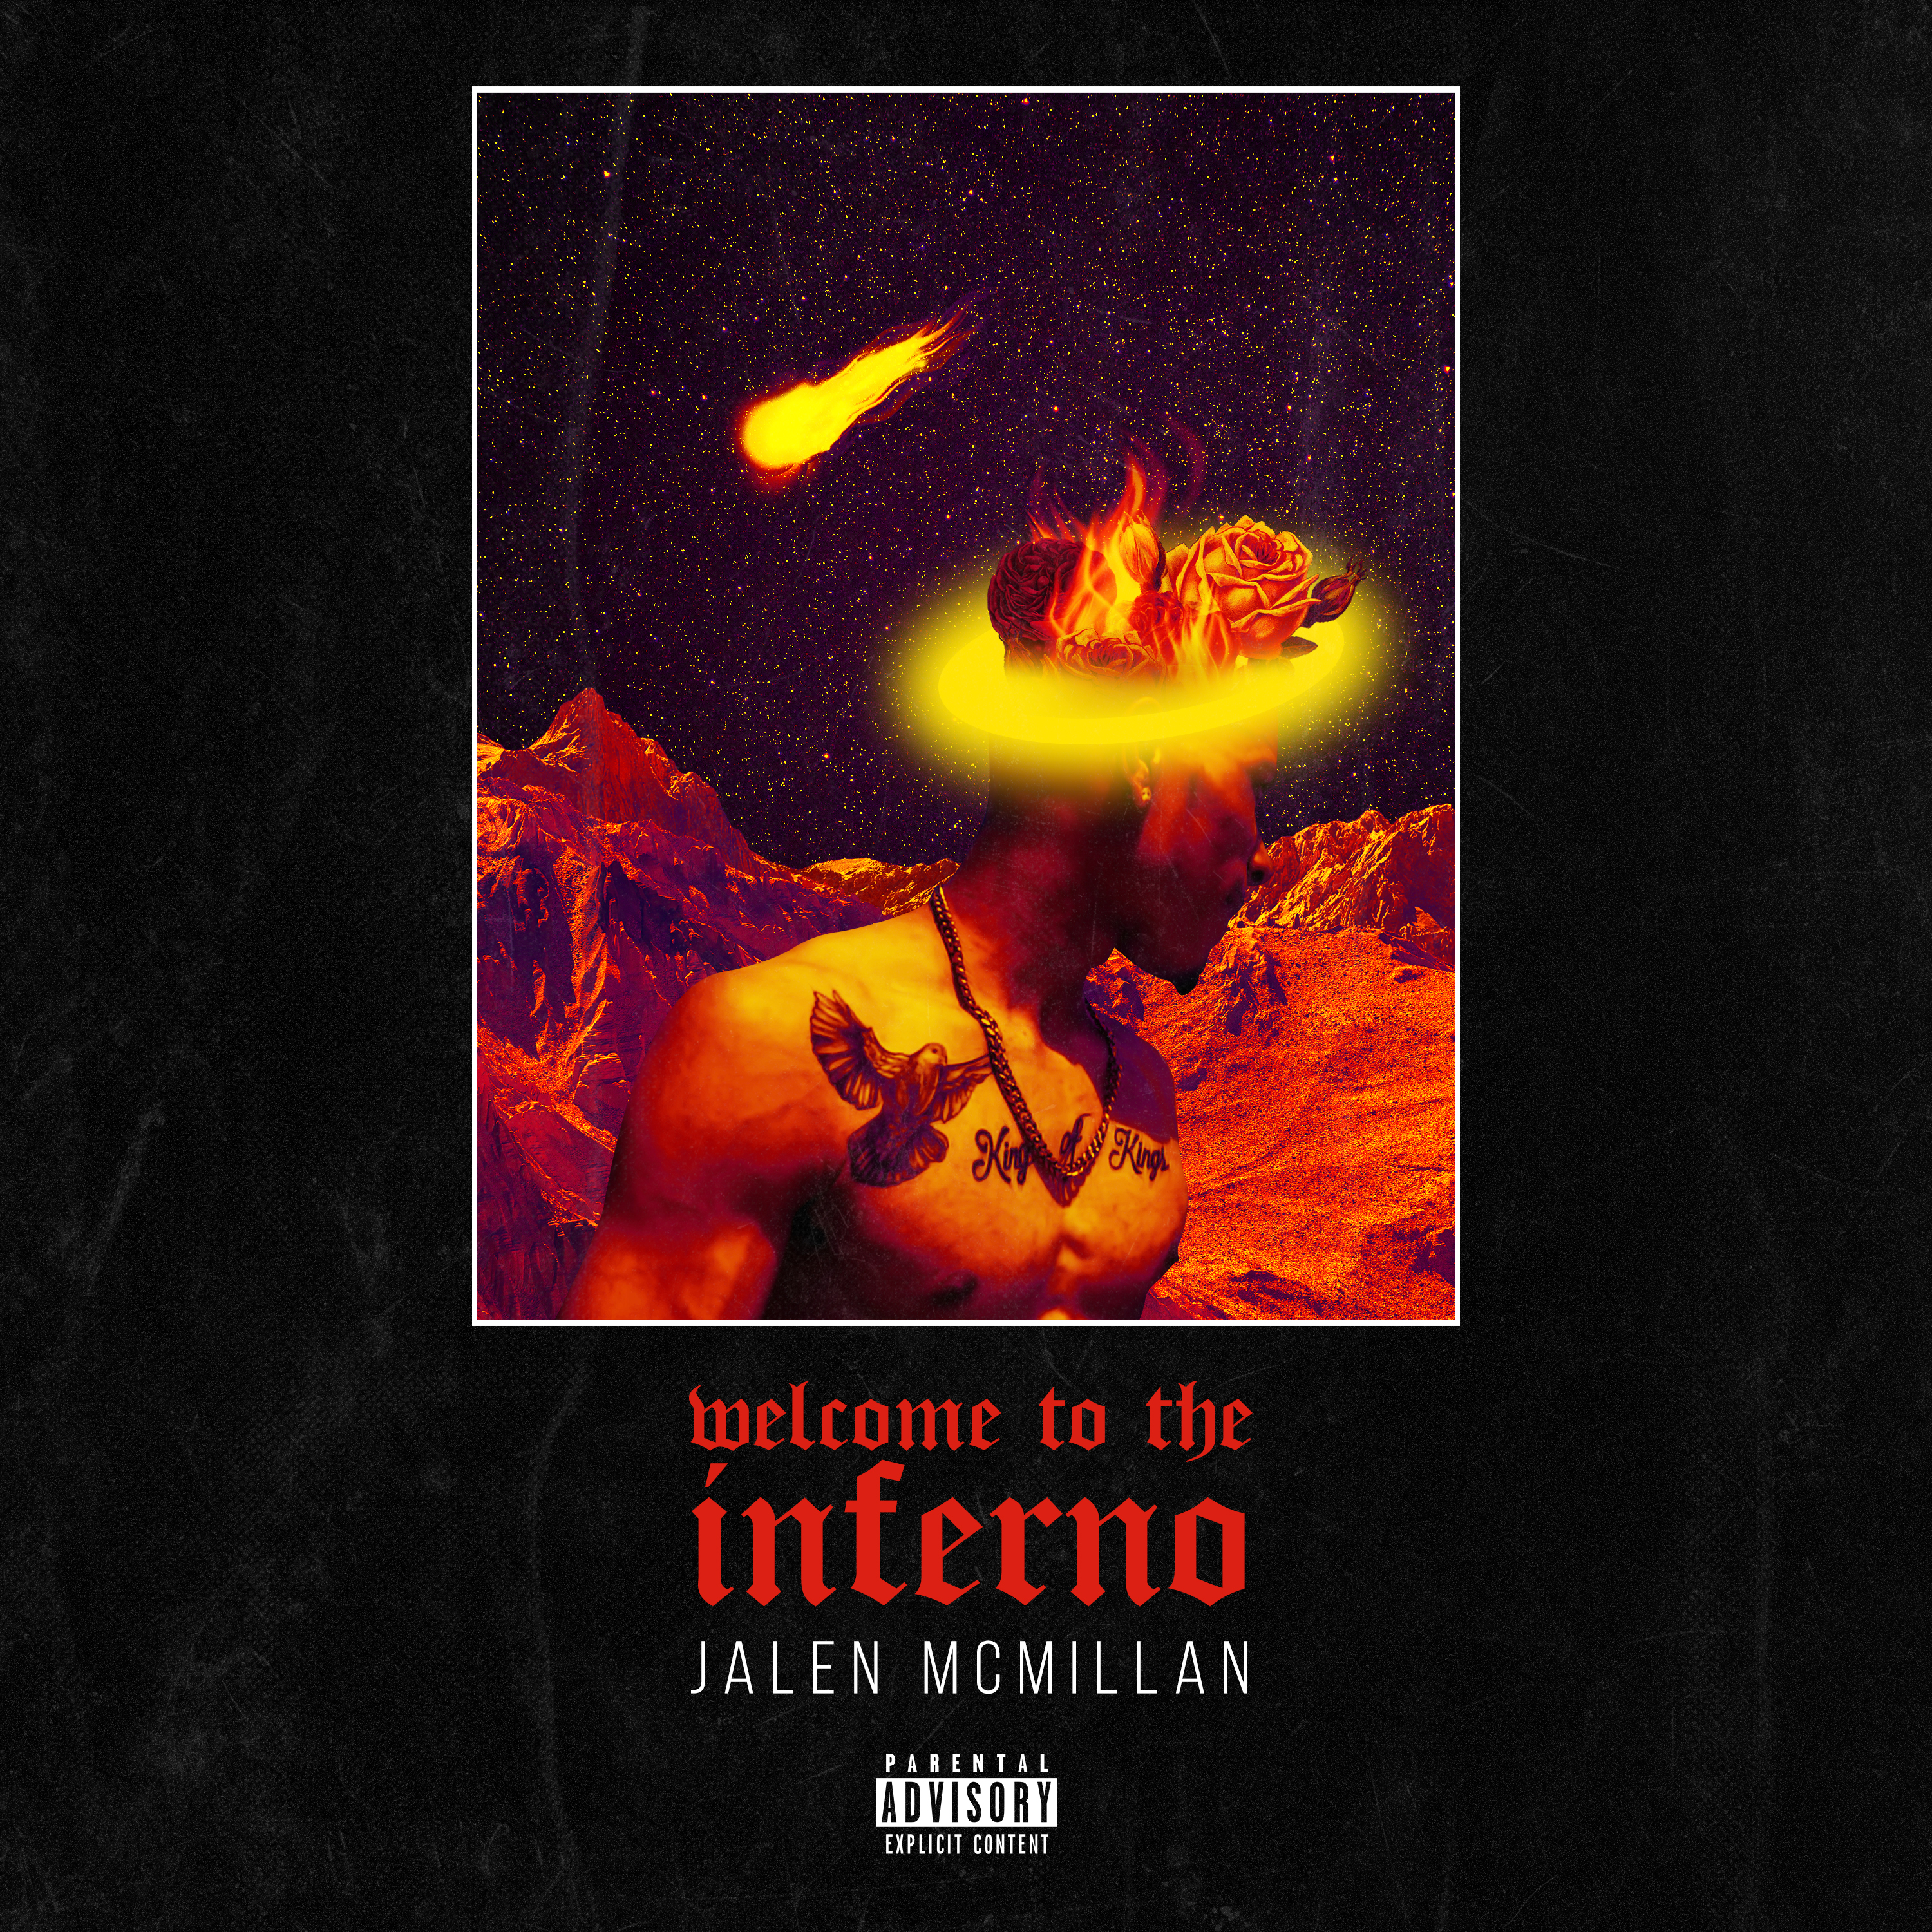 https://www.apstersmedia.com/wp-content/uploads/2020/02/Jalen-McMillan-Welcome-to-the-Inferno-Artwork.jpg